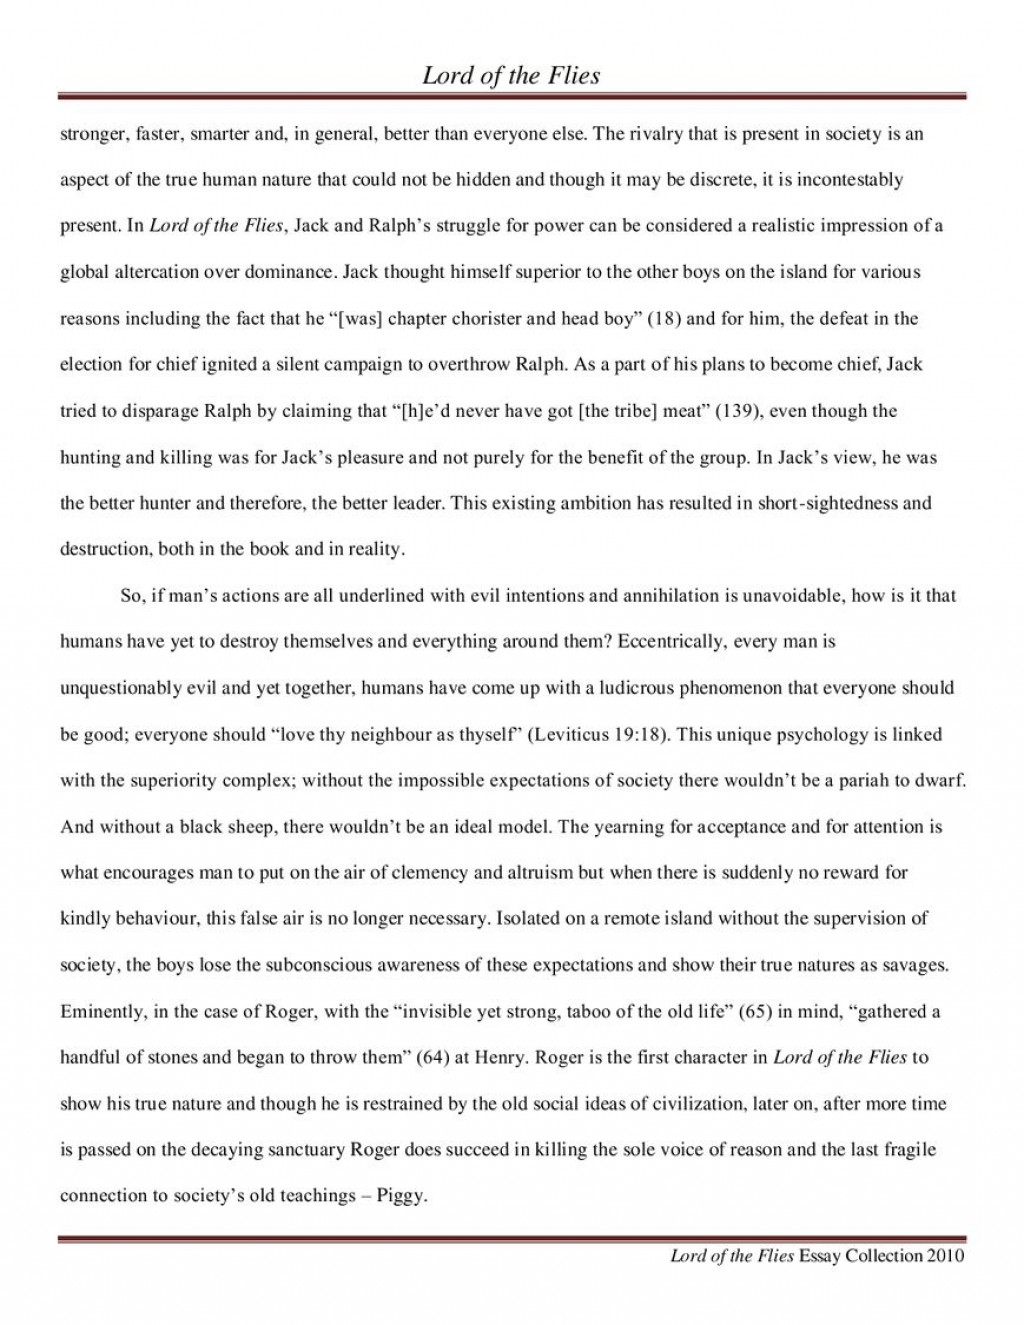 011 Essay Example Collection Large Shocking Collections For Students 2017 Best Pdf Large